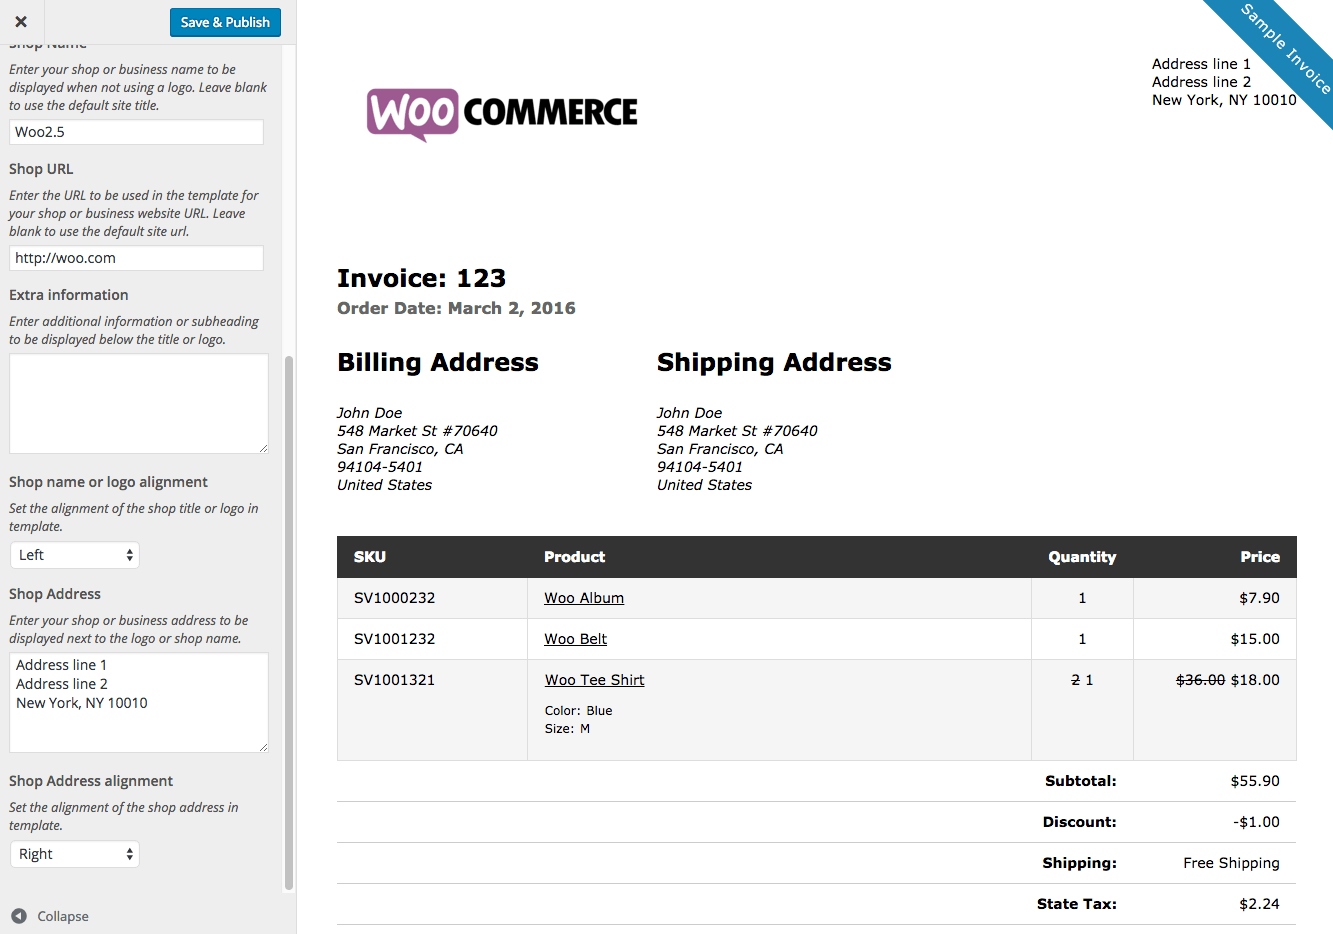 Ultrablogus  Marvelous Woocommerce Print Invoices Amp Packing Lists  Woocommerce Docs With Glamorous Woocommerce Print Invoices  Packing Lists Customizer With Extraordinary Invoice Due Date Calculator Also Invoice Price Of Car In Addition Invoice Price Honda Crv And Carpet Cleaning Invoices As Well As Car Invoice Vs Msrp Additionally Construction Invoice Example From Docswoocommercecom With Ultrablogus  Glamorous Woocommerce Print Invoices Amp Packing Lists  Woocommerce Docs With Extraordinary Woocommerce Print Invoices  Packing Lists Customizer And Marvelous Invoice Due Date Calculator Also Invoice Price Of Car In Addition Invoice Price Honda Crv From Docswoocommercecom